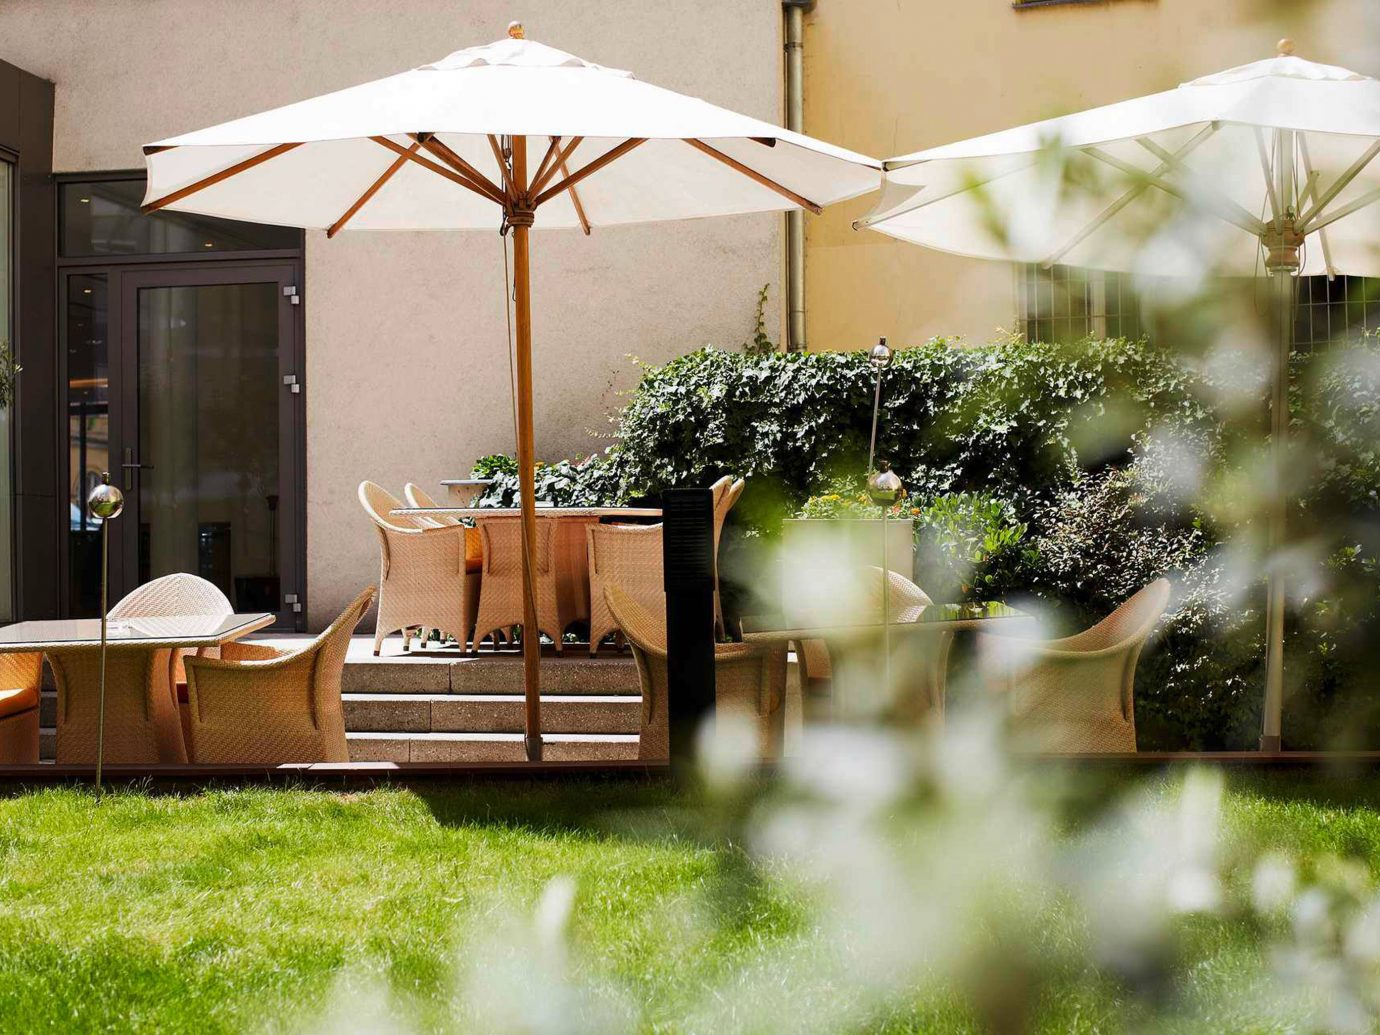 europe Grounds Hotels Living Lounge Prague grass outdoor backyard house home estate outdoor structure flower area furniture